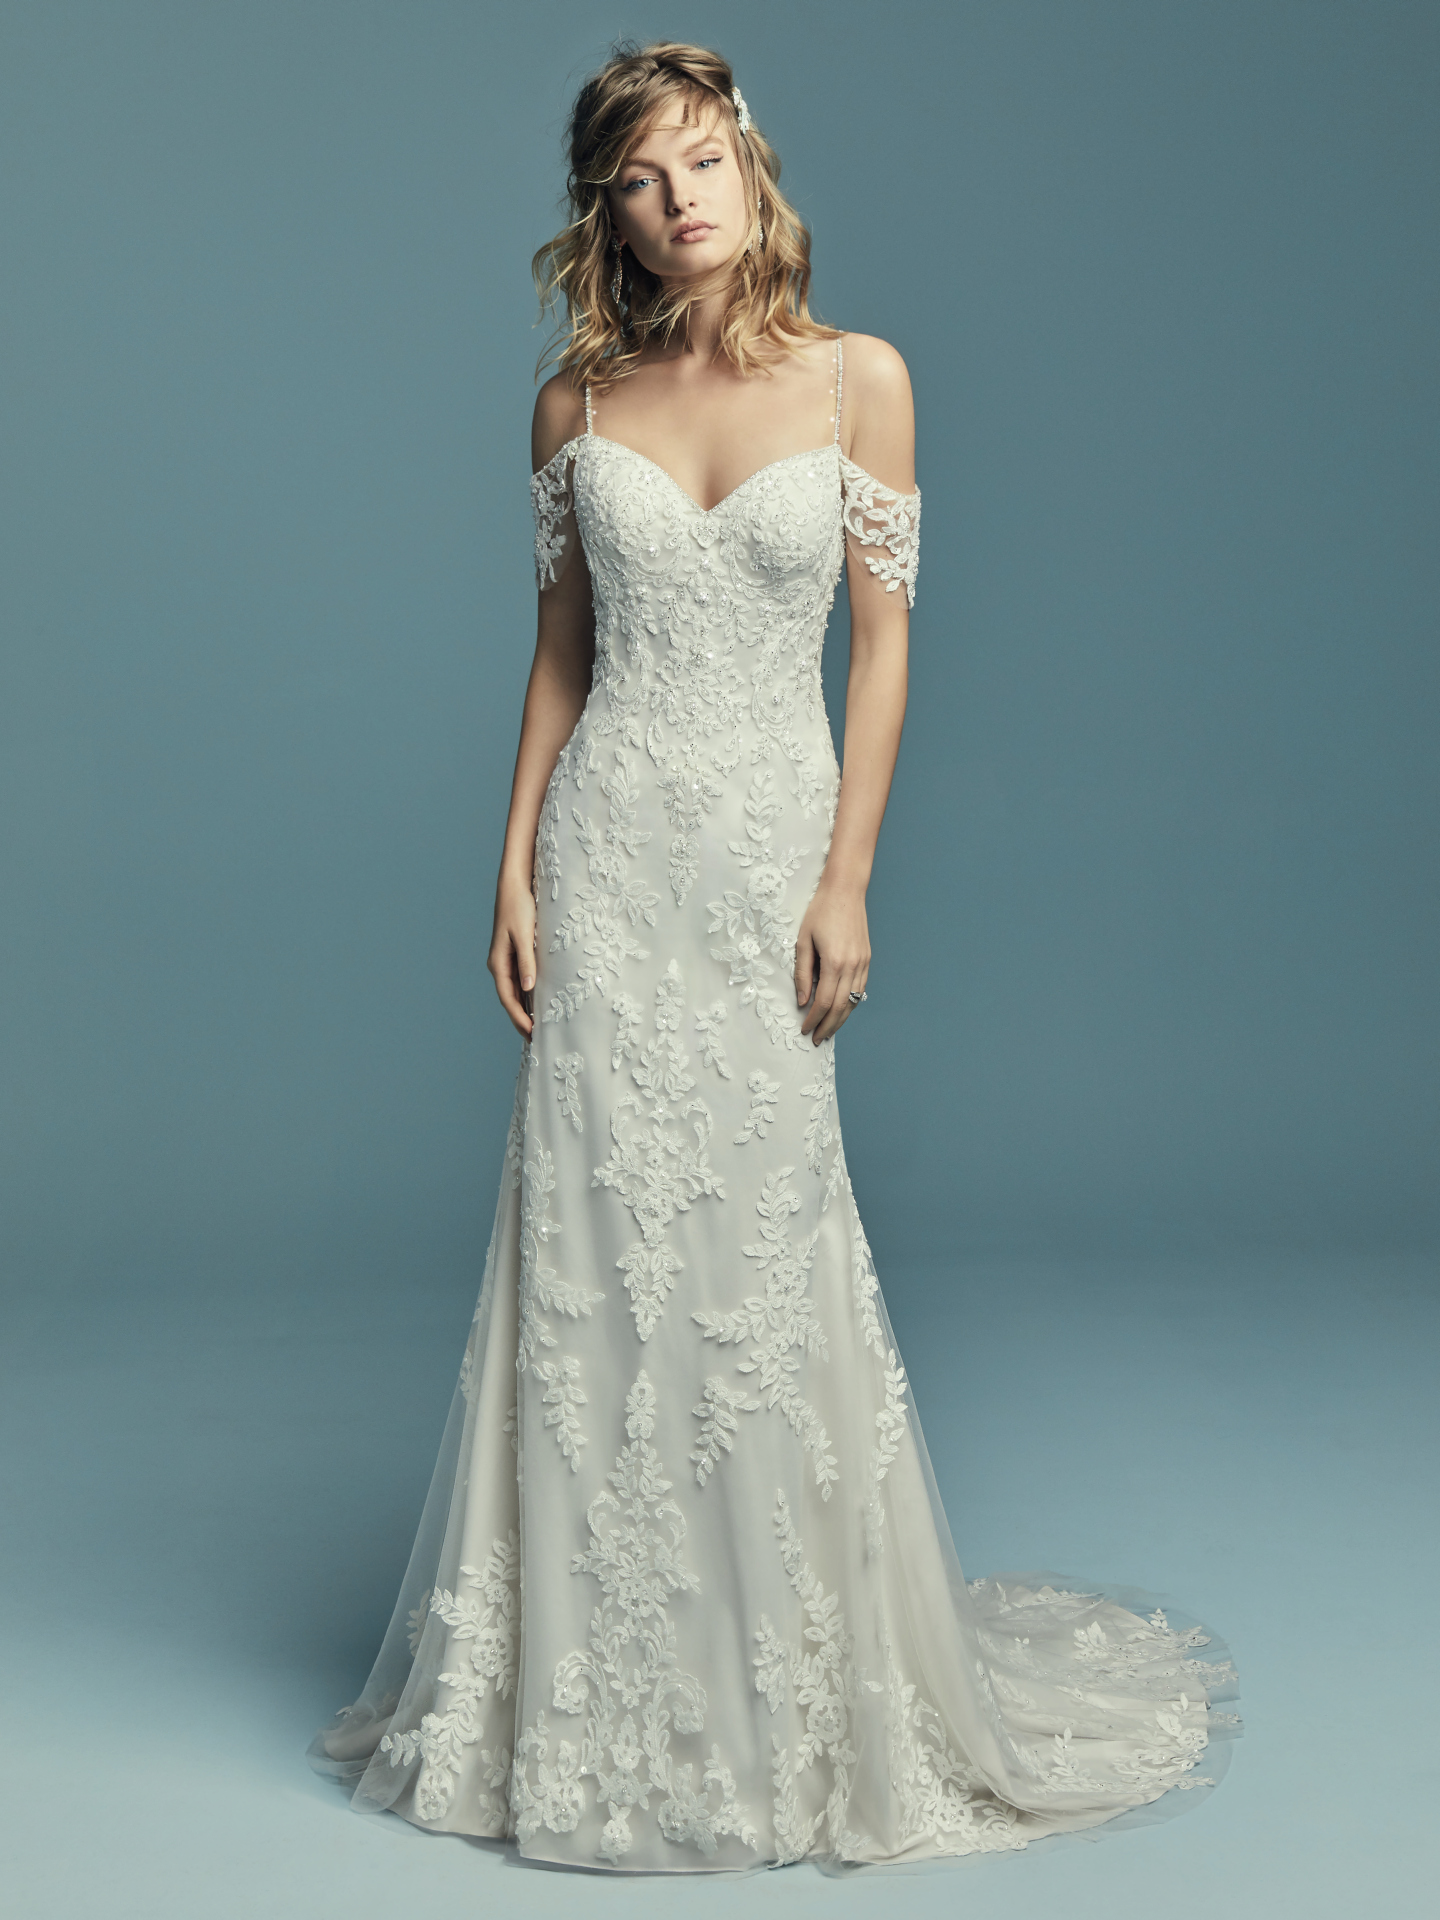 Shimmering sleeved wedding gown Angelica by Maggie Sottero